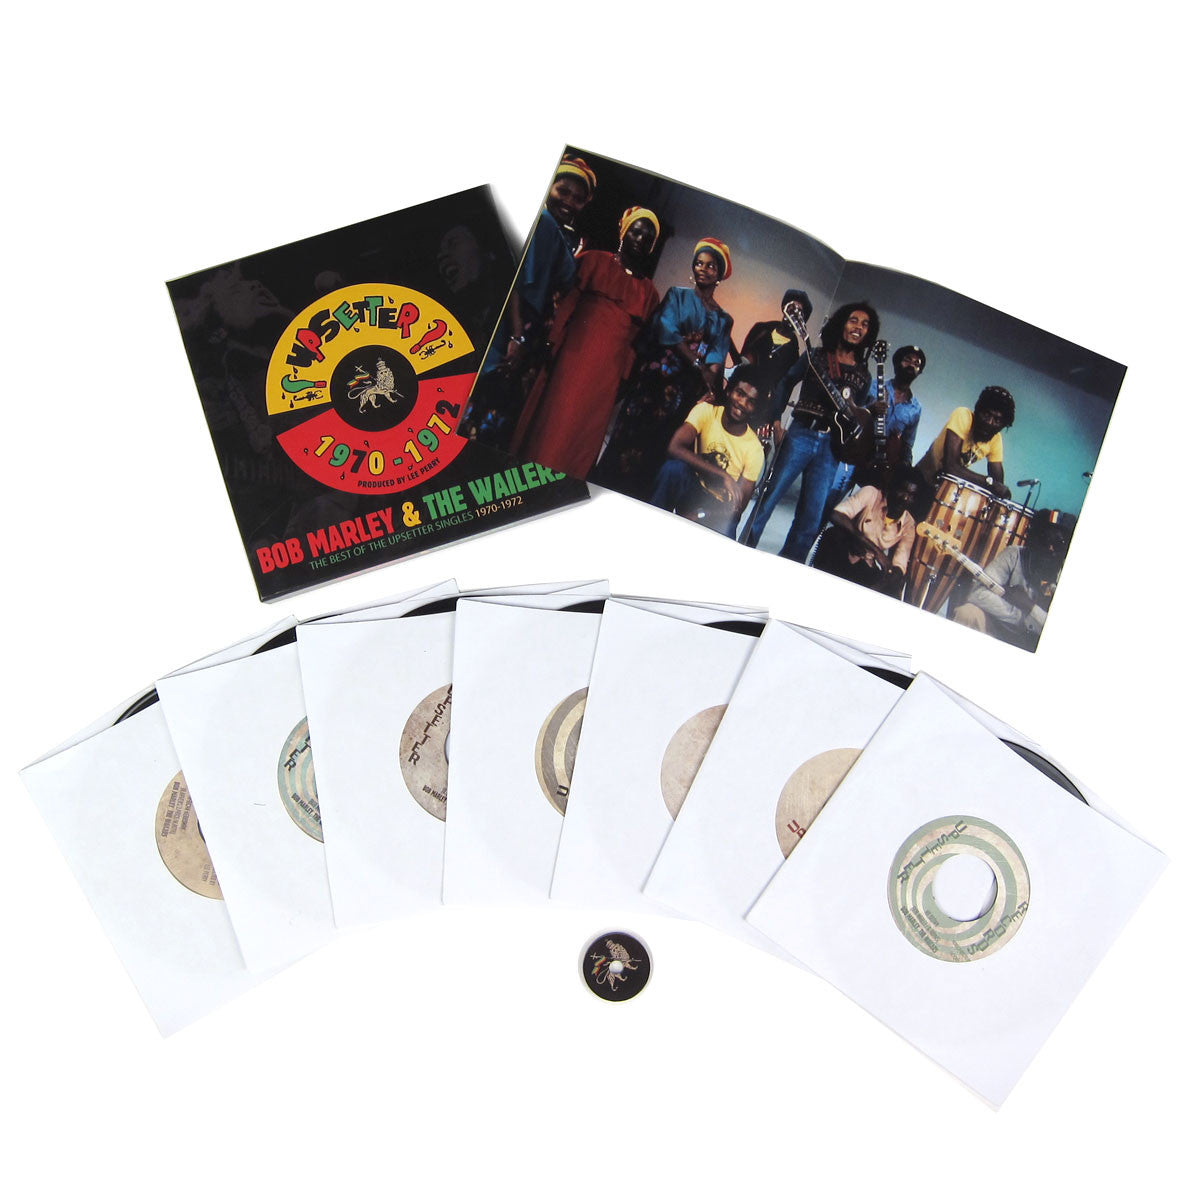 "Bob Marley: The Best Of The Upsetter Singles 1970-1972 (Lee Perry) 7x7"" Boxset"